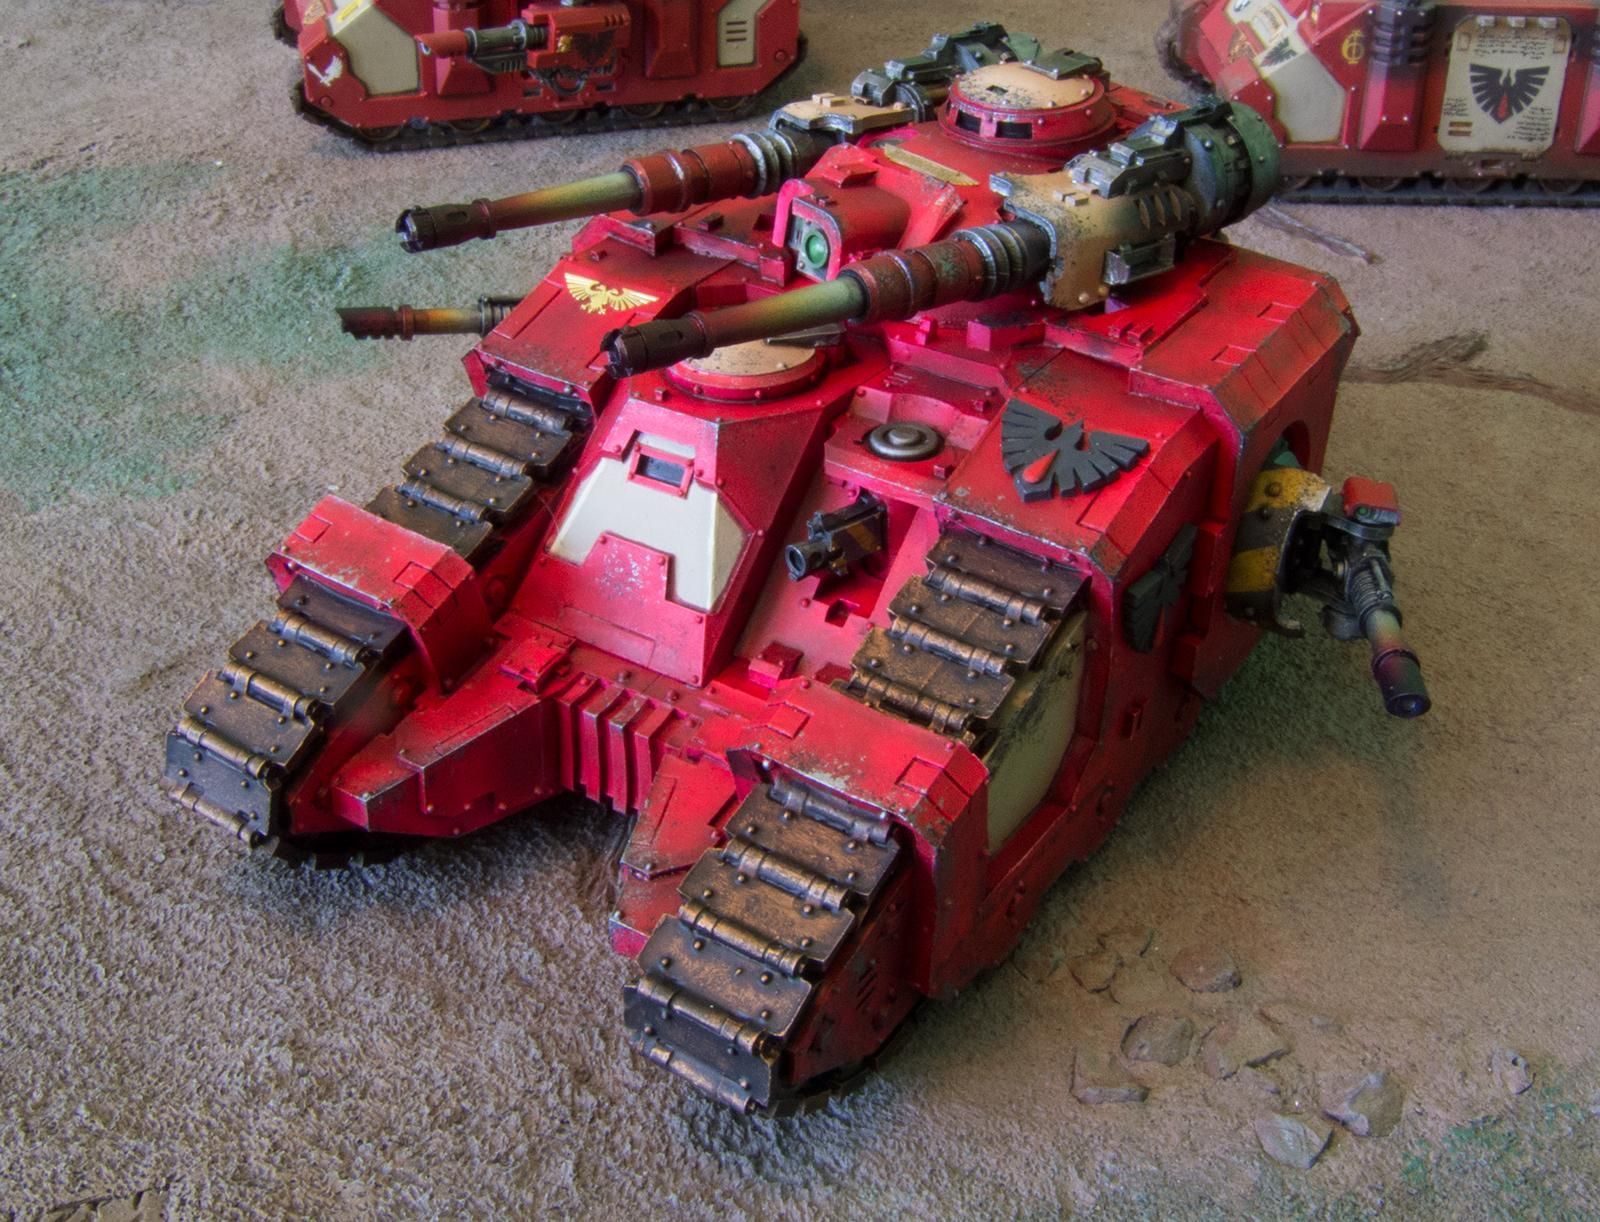 Horus Heresy, Sicaran Battle Tank, Space Marines, Warhammer 40,000